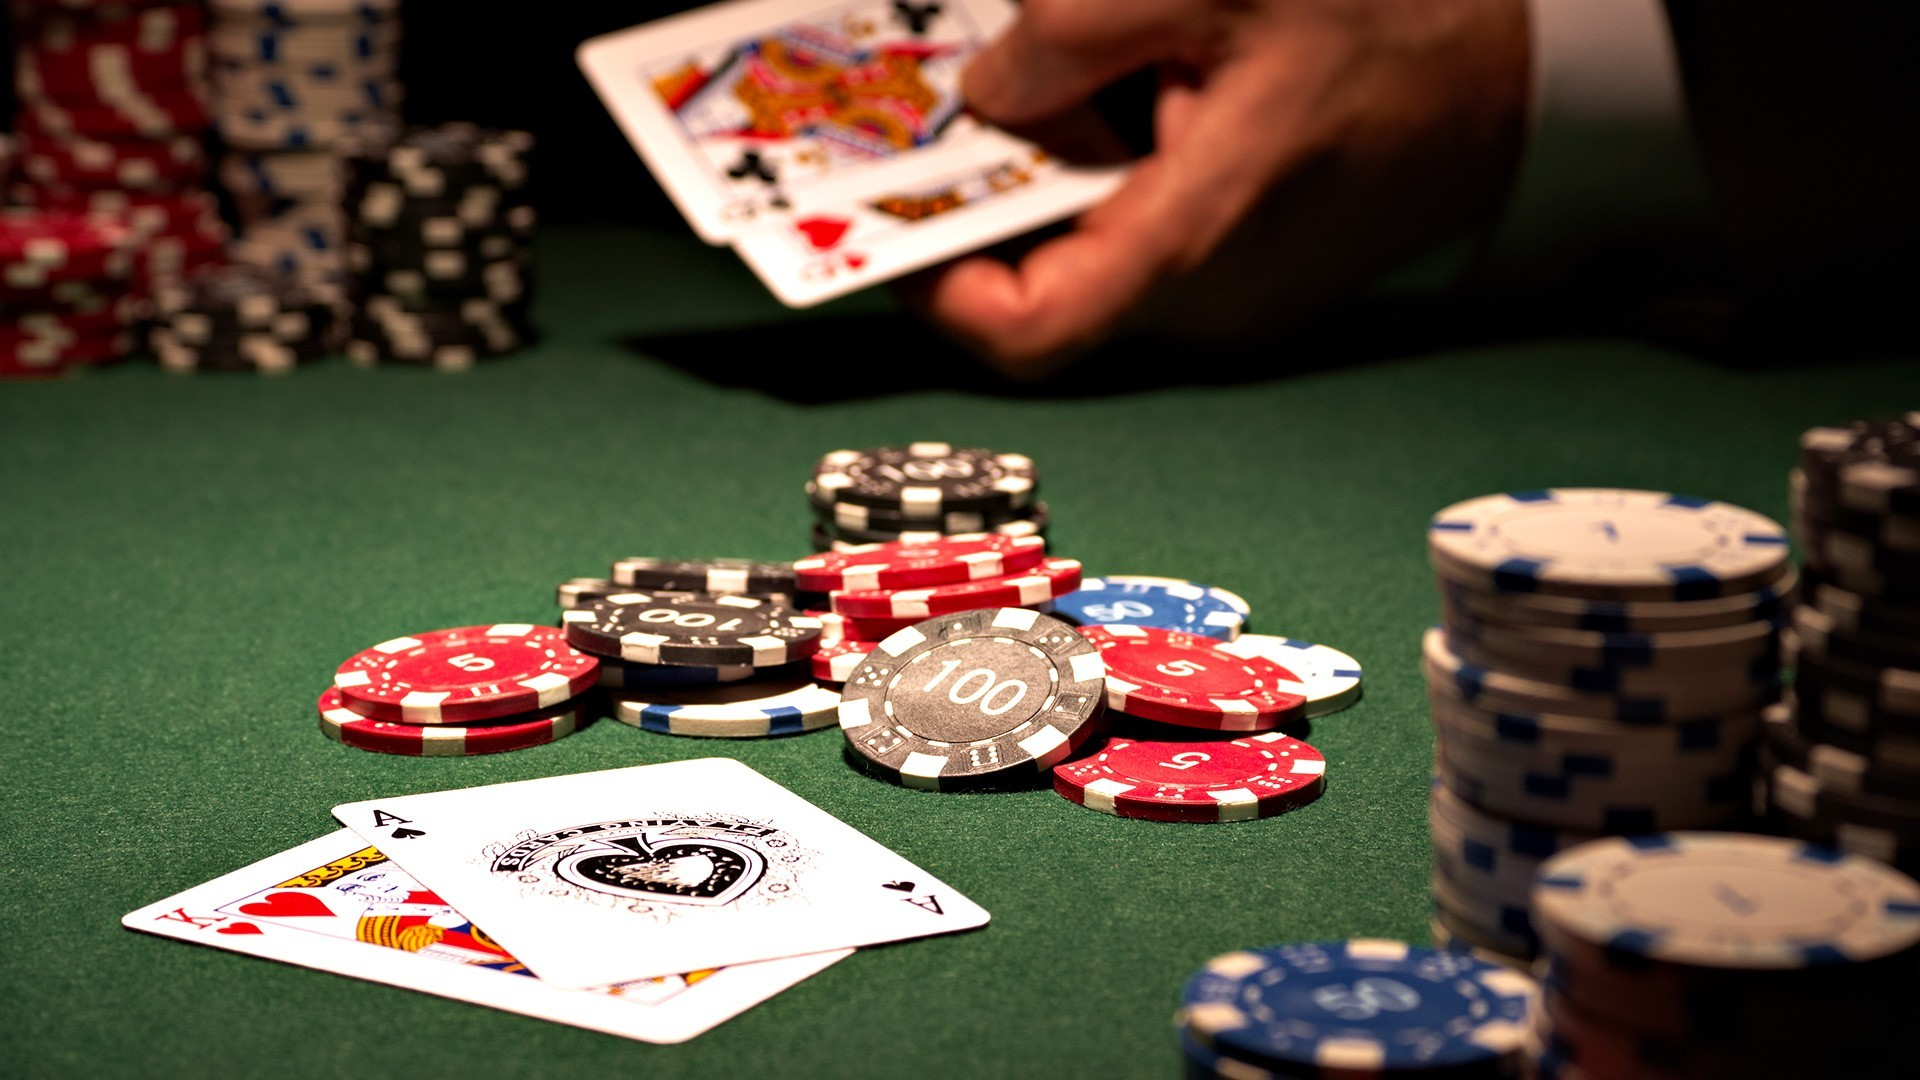 Use these five tips to find an online casino you can trust